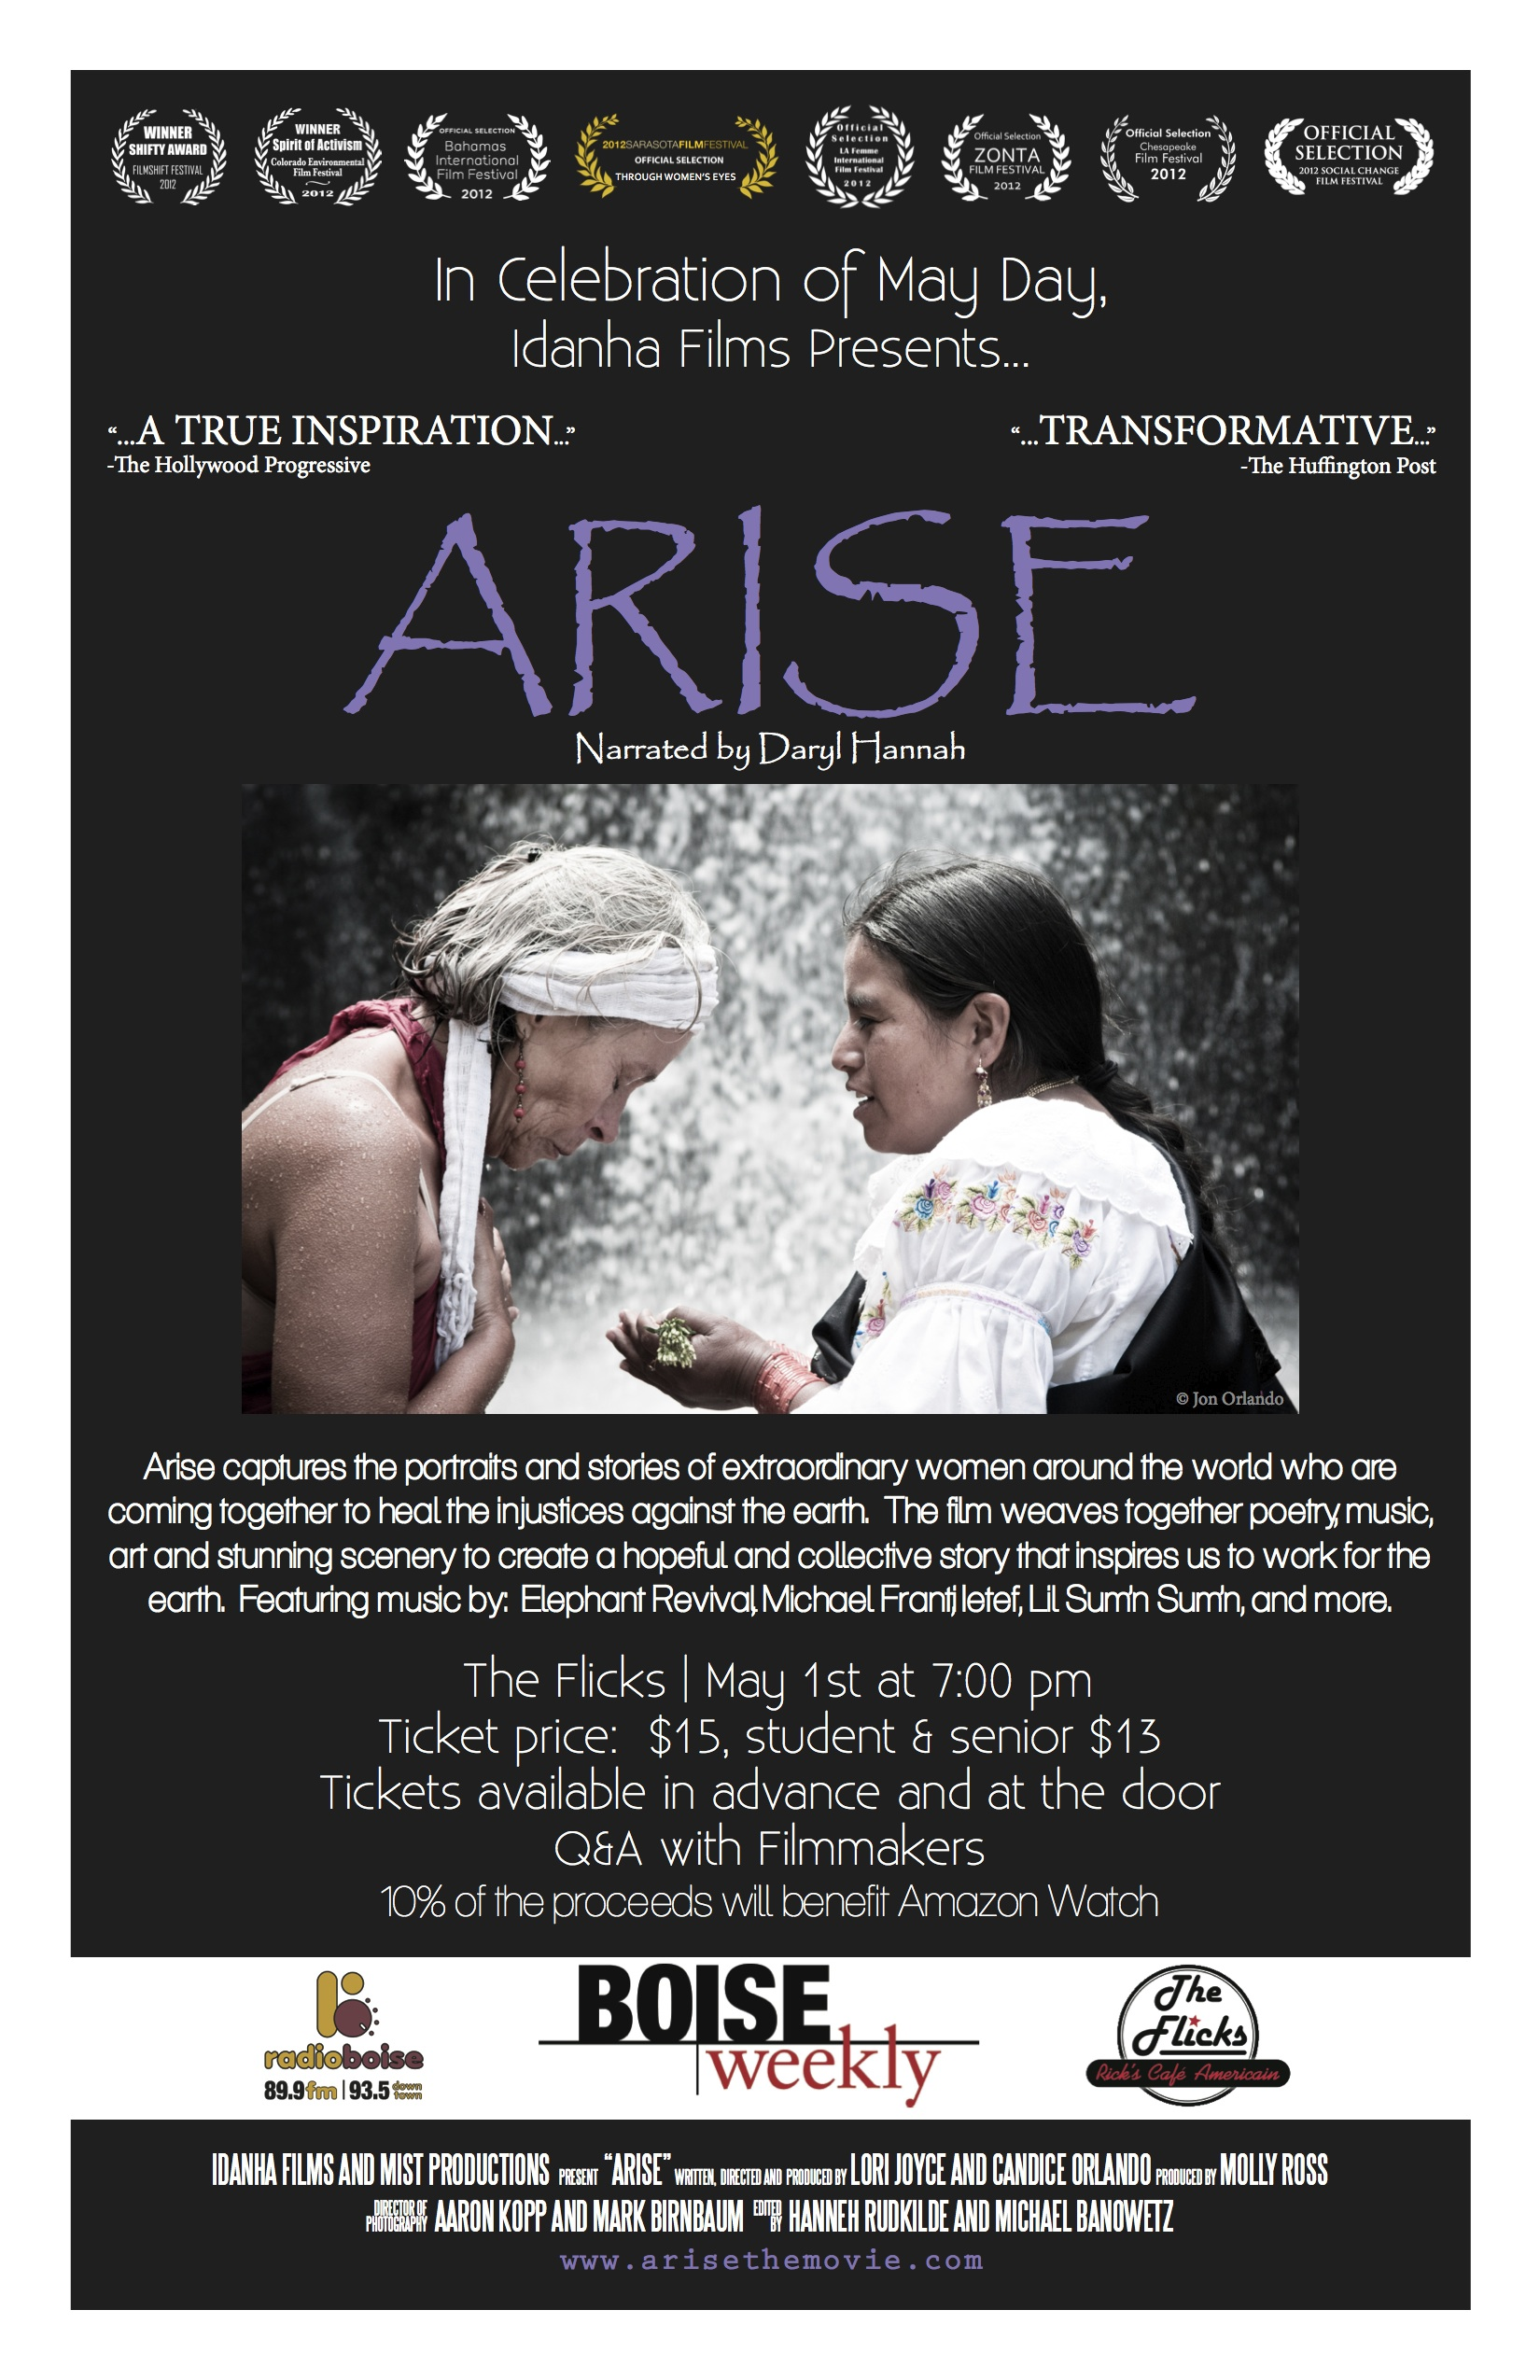 Boise april 2013 Arise poster - revised copy